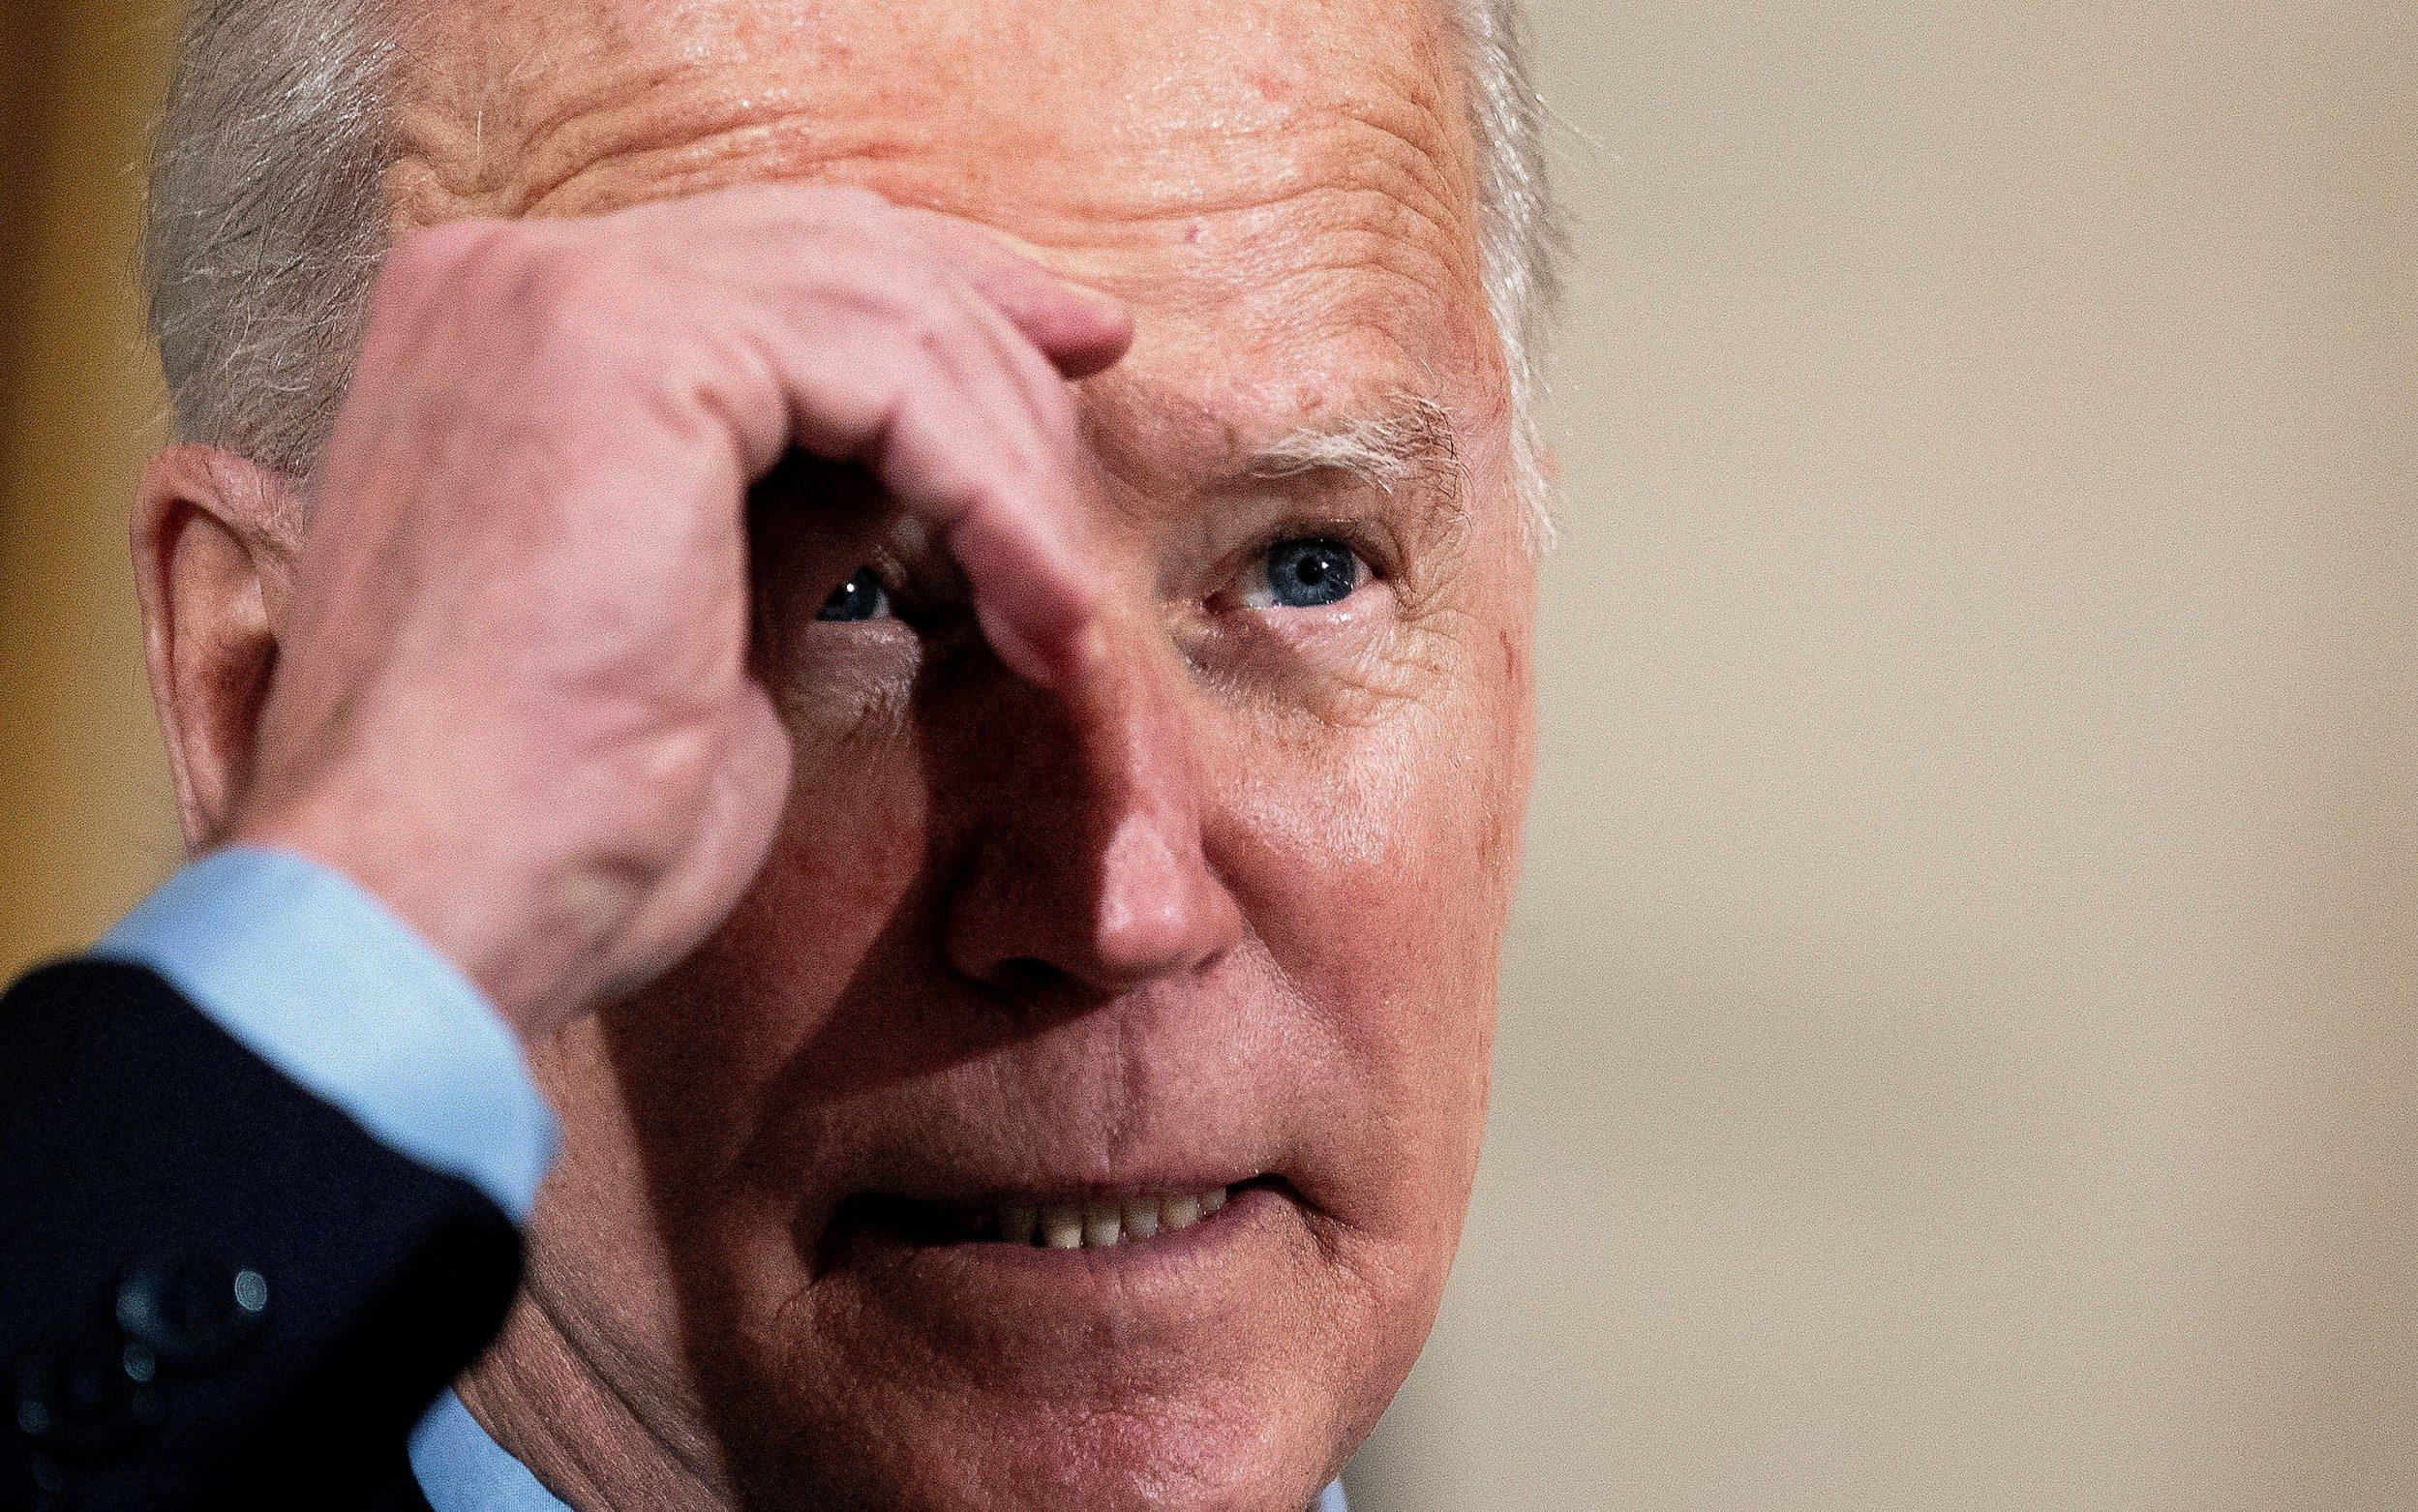 Israel frustrated by long wait for Joe Biden phone call despite close security ties